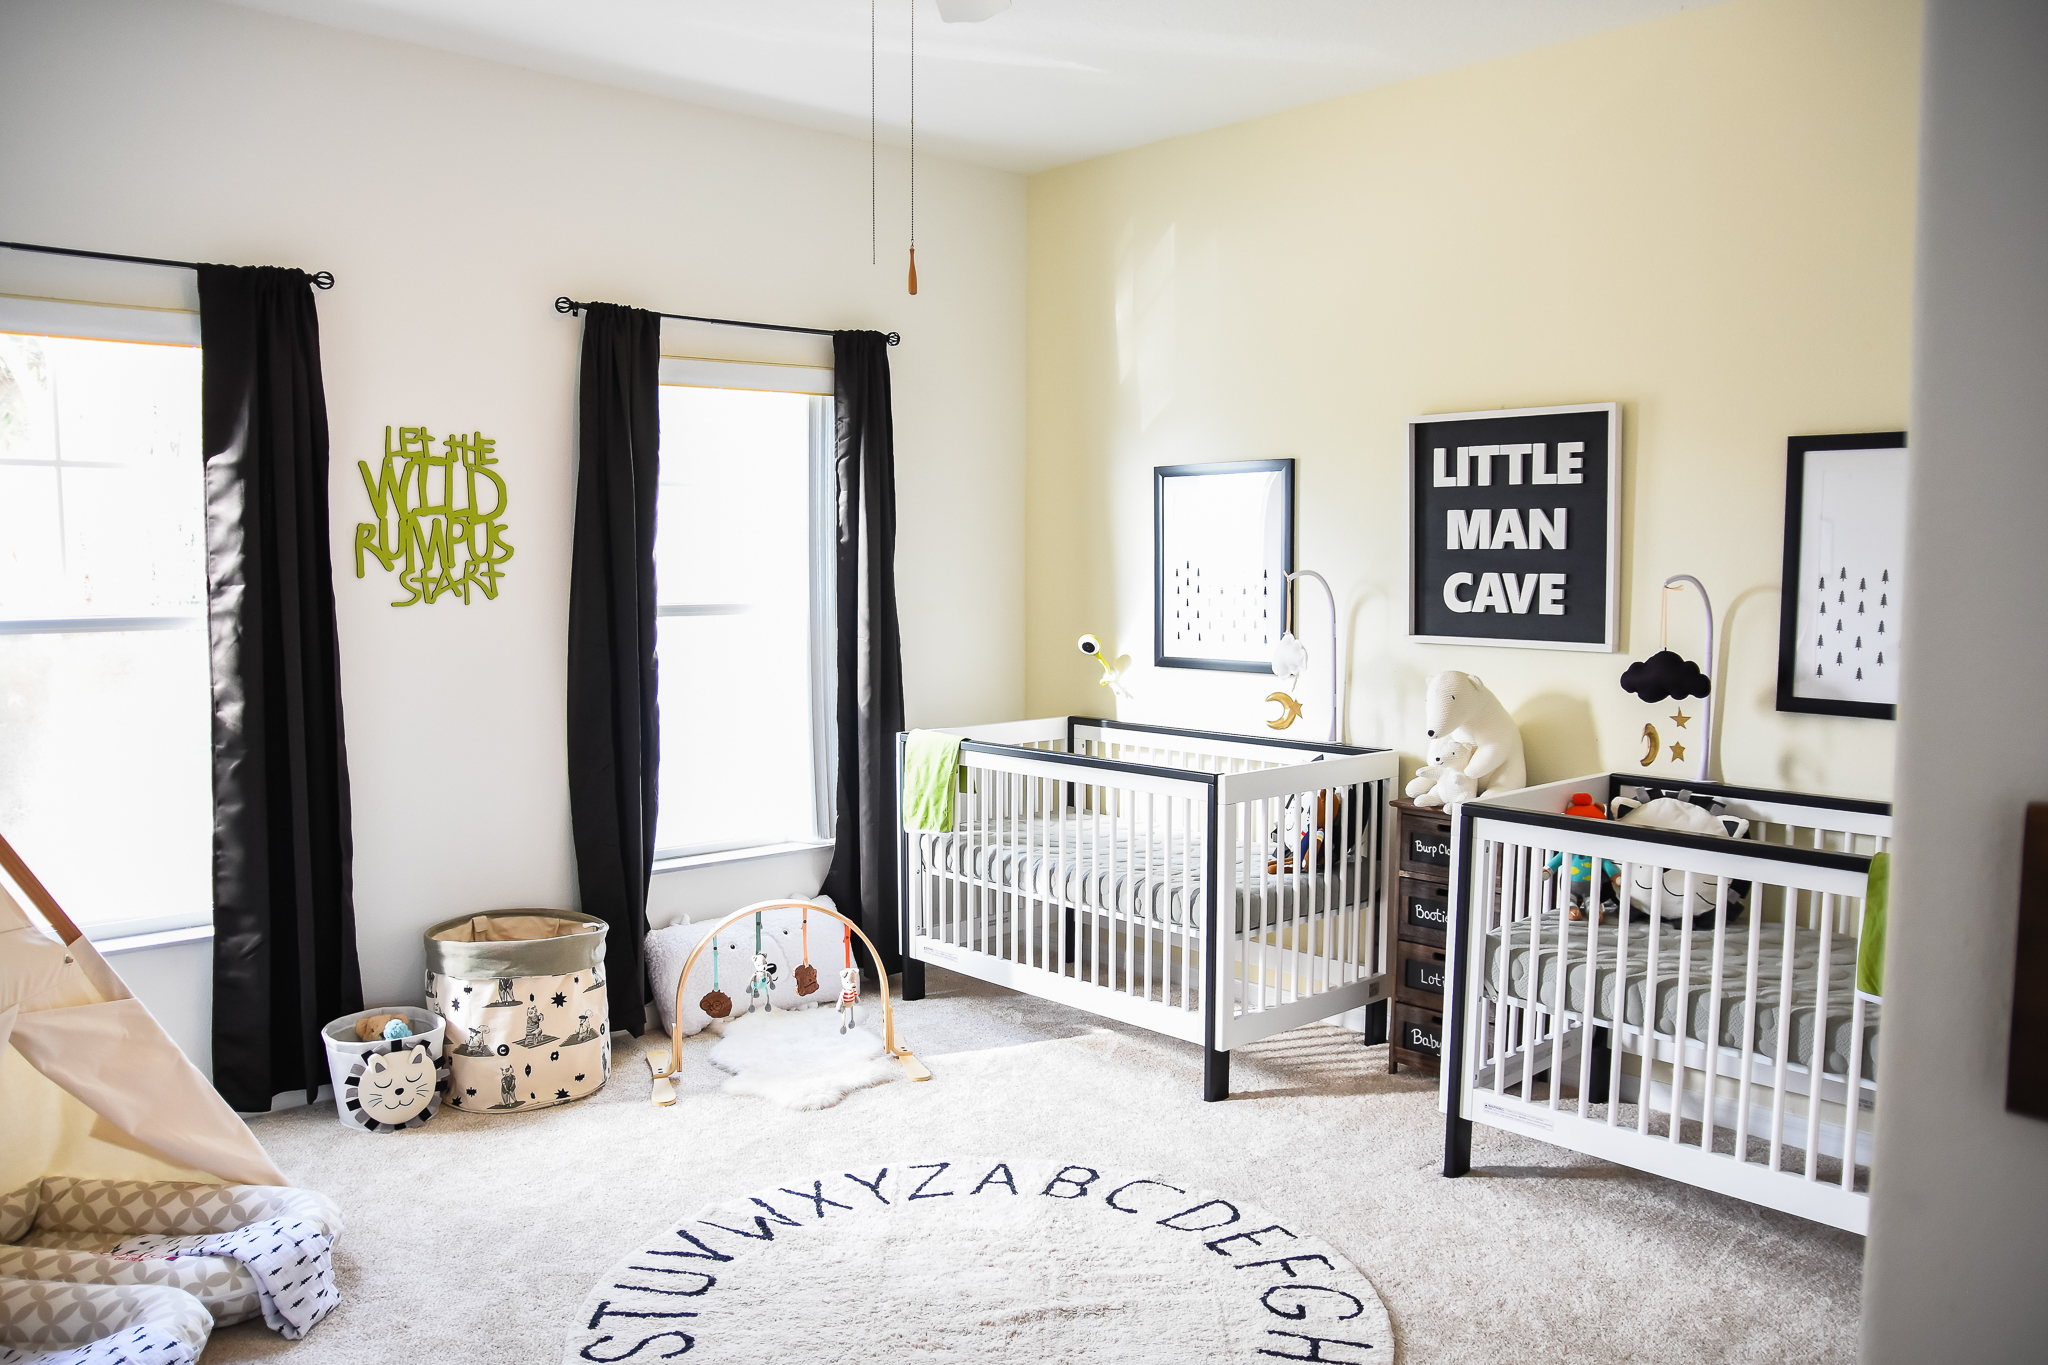 Baby Nursery Decor, Room Themes, Design Ideas - Project Nursery